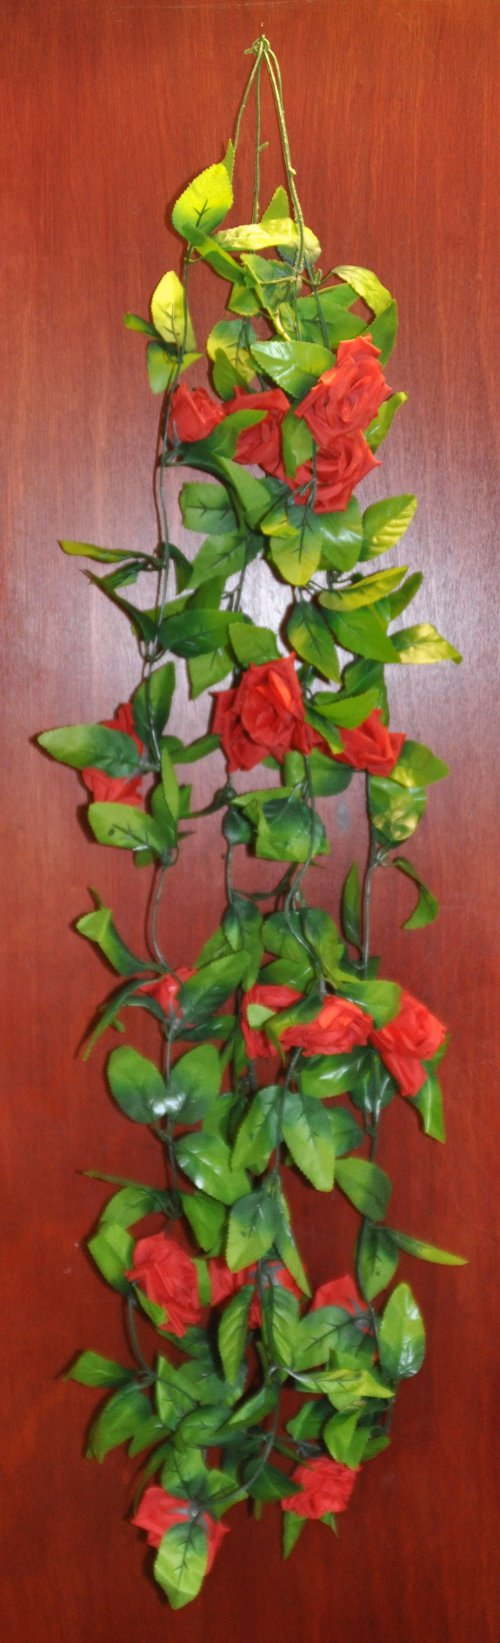 Rose Croix - 8' Rose Garland (set of 2)